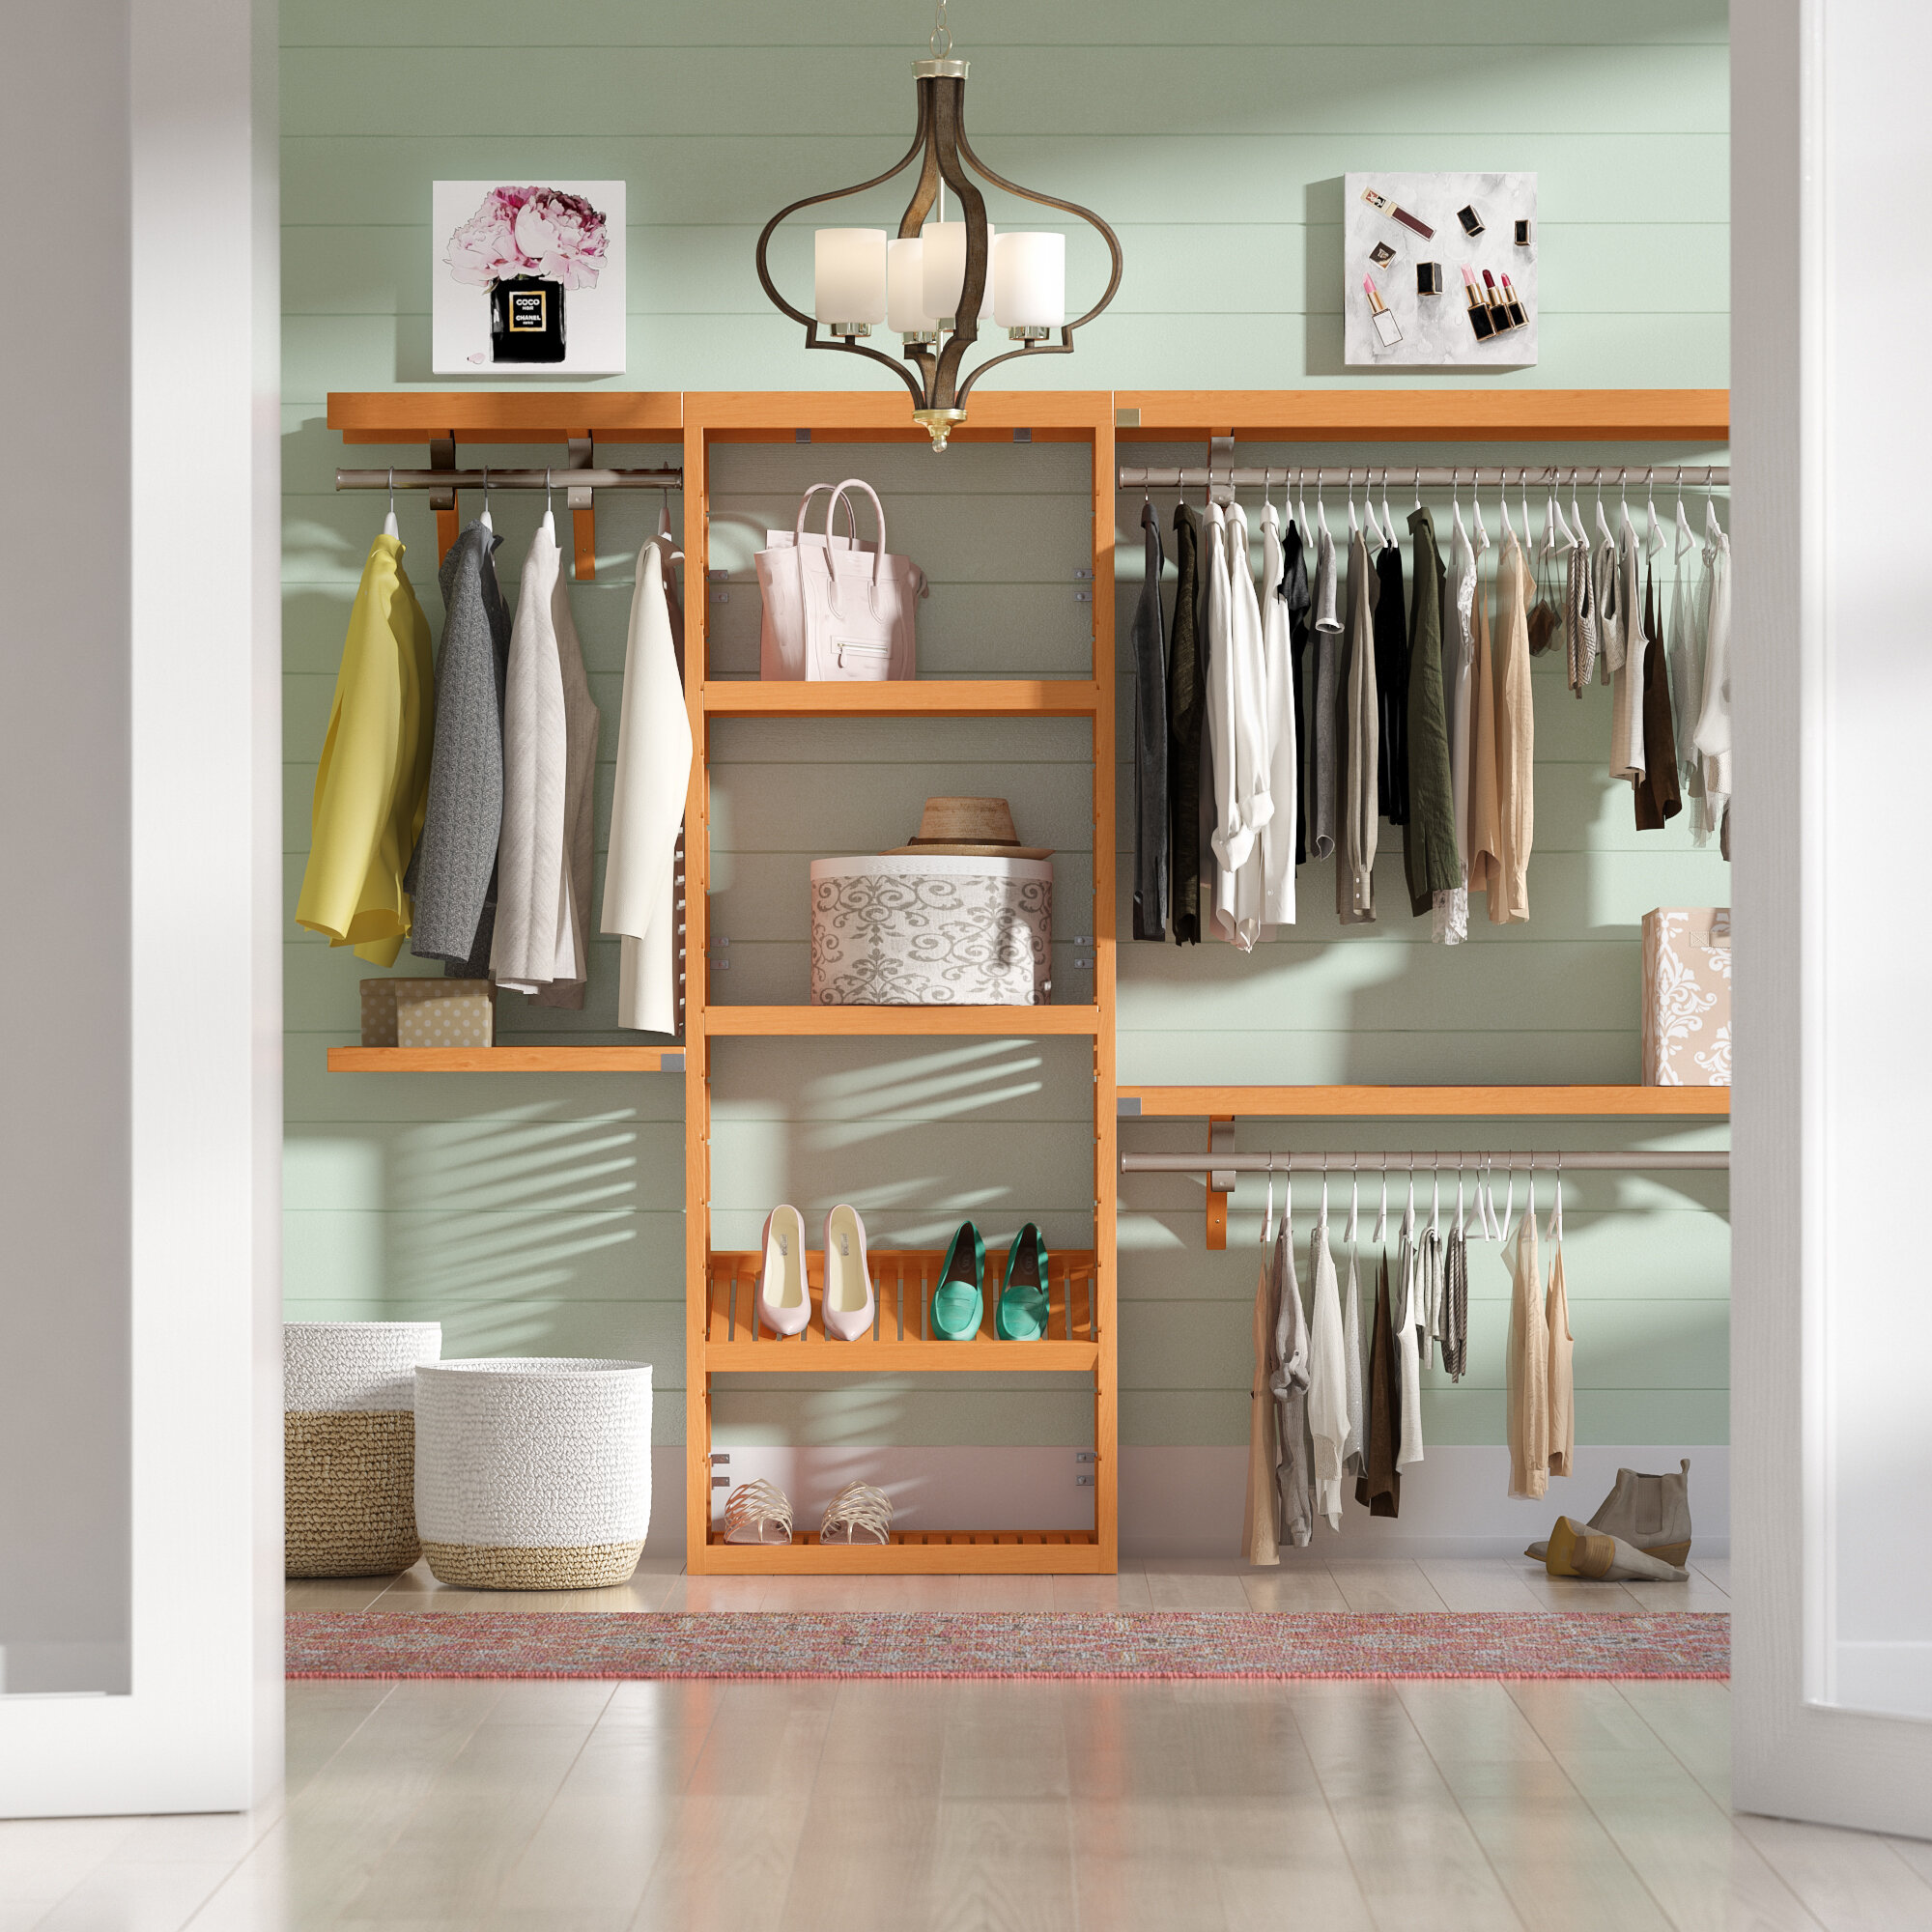 wardrobe valore relief en b product system built cupboards l architonic from team systems in by